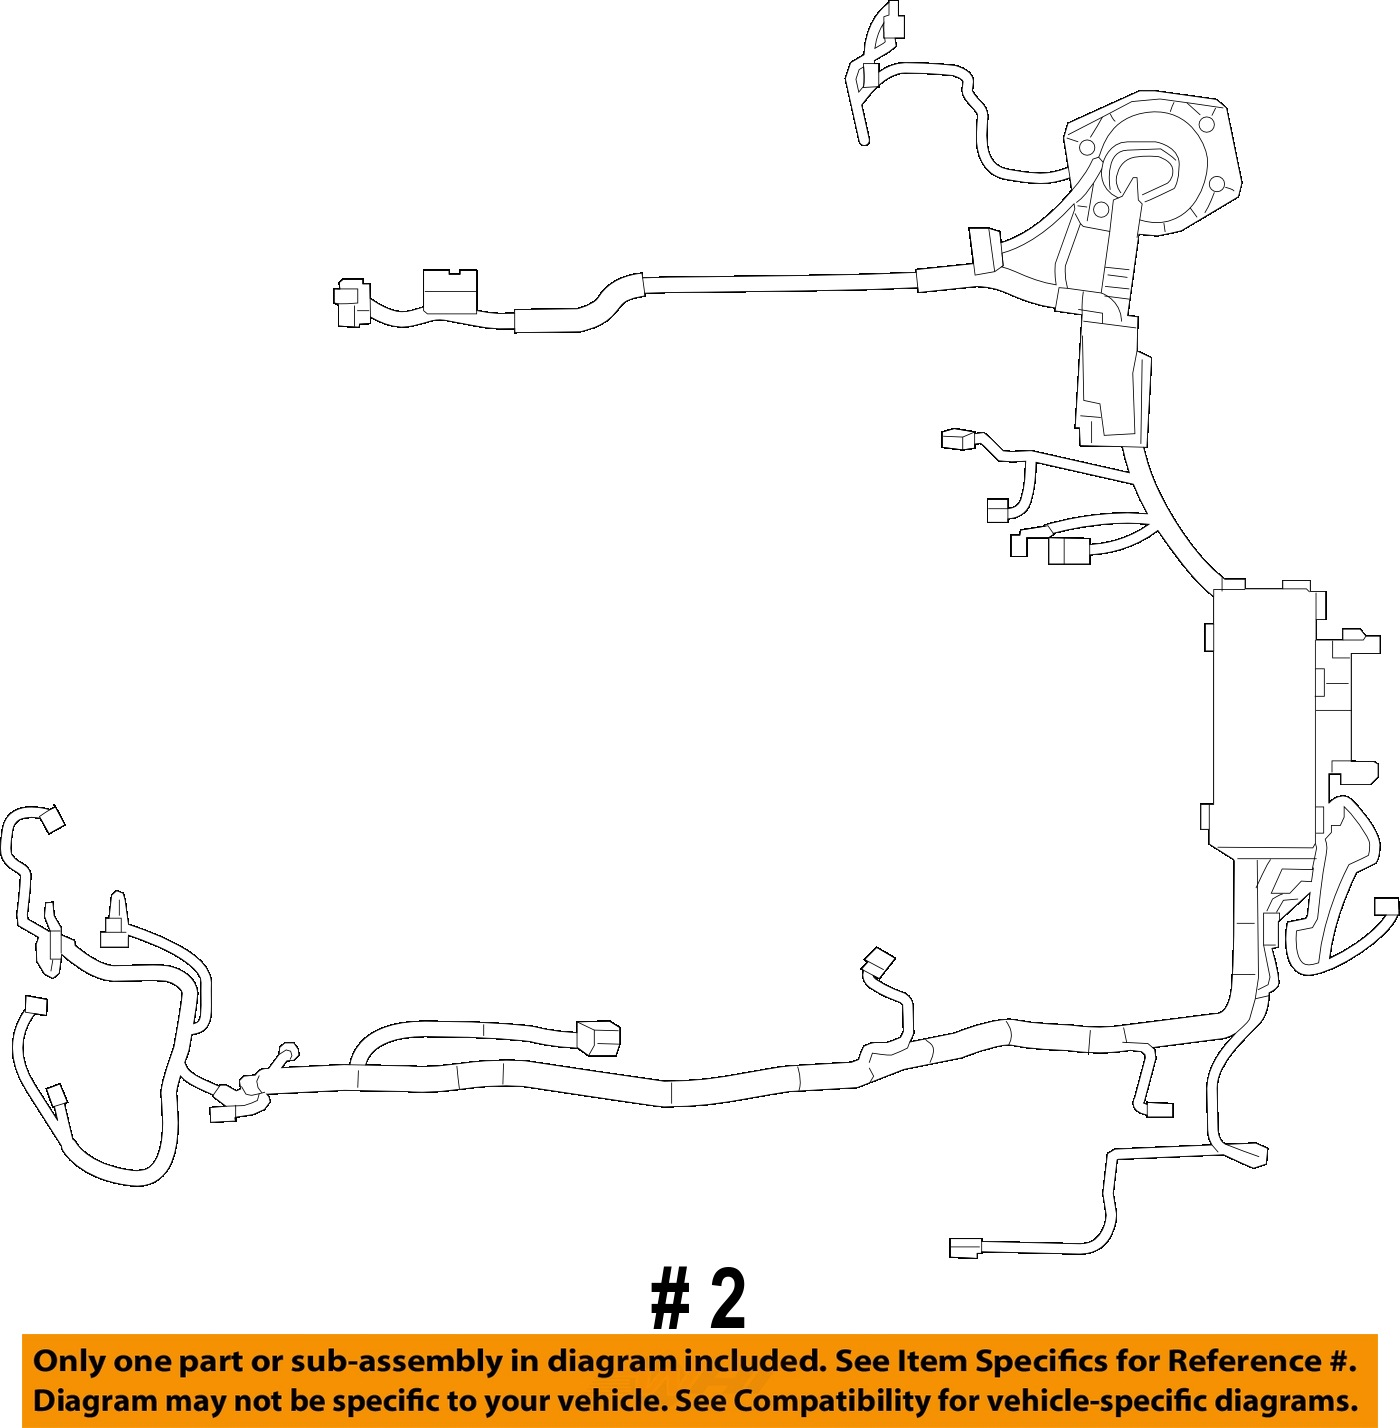 2006 Tc Ignition Wiring Diagram Schemes Scion Xb 4 Wire Sensor 06 Daily Update U2022 Oxygen